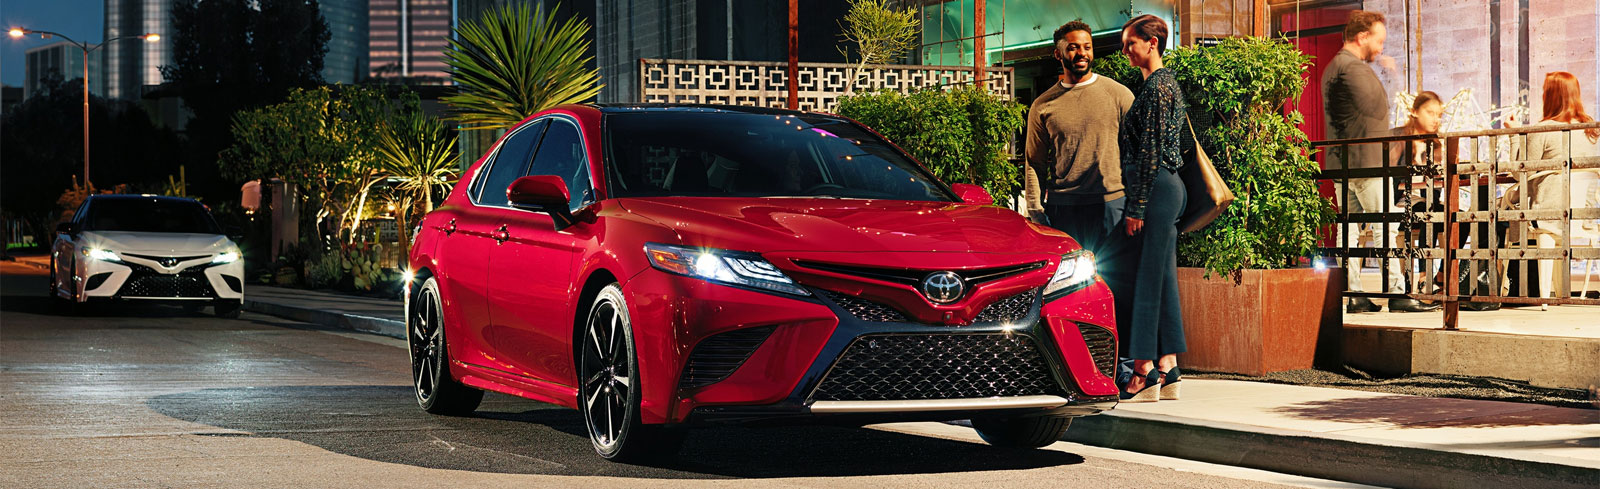 All New 2020 Toyota Camry Available at Future Toyota of Yuba City